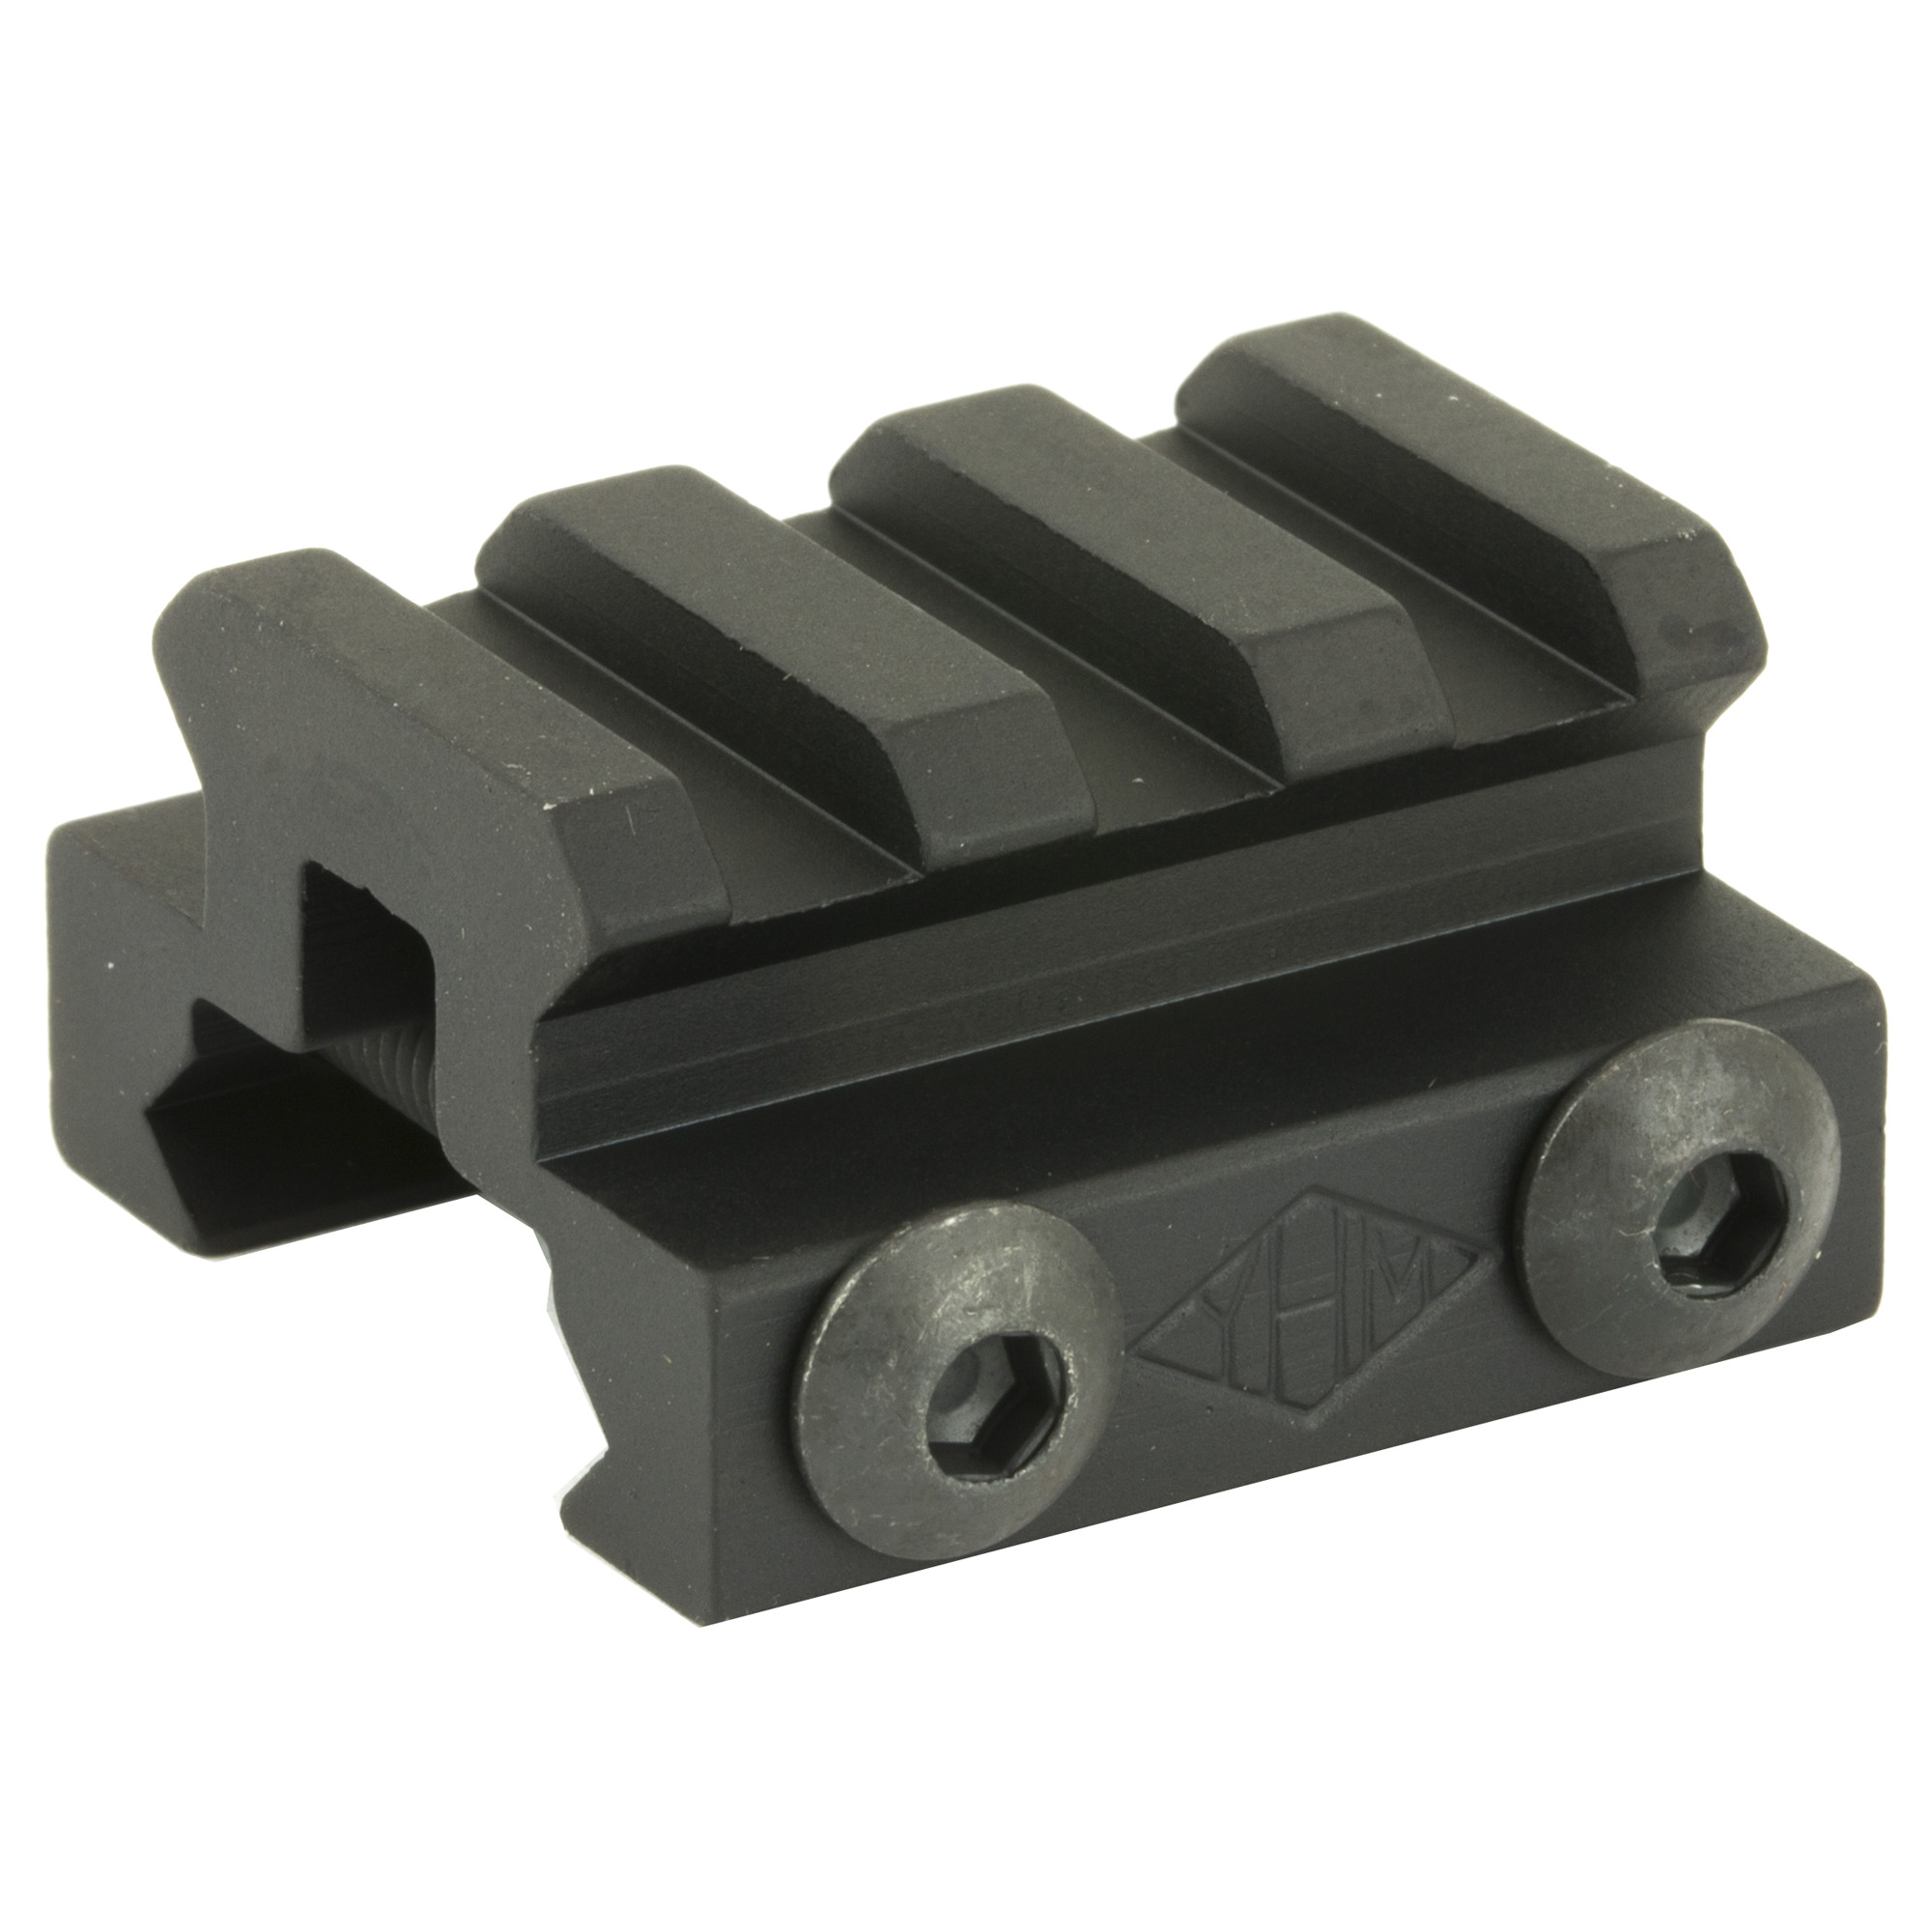 """These risers meet mil. spec 1913 and use a larger screw for more clamping power. They fit any picatinny rail. Great for elevating scopes"""" sights"""" flashlights"""" etc. These risers elevate your accessories 1/2"""""""